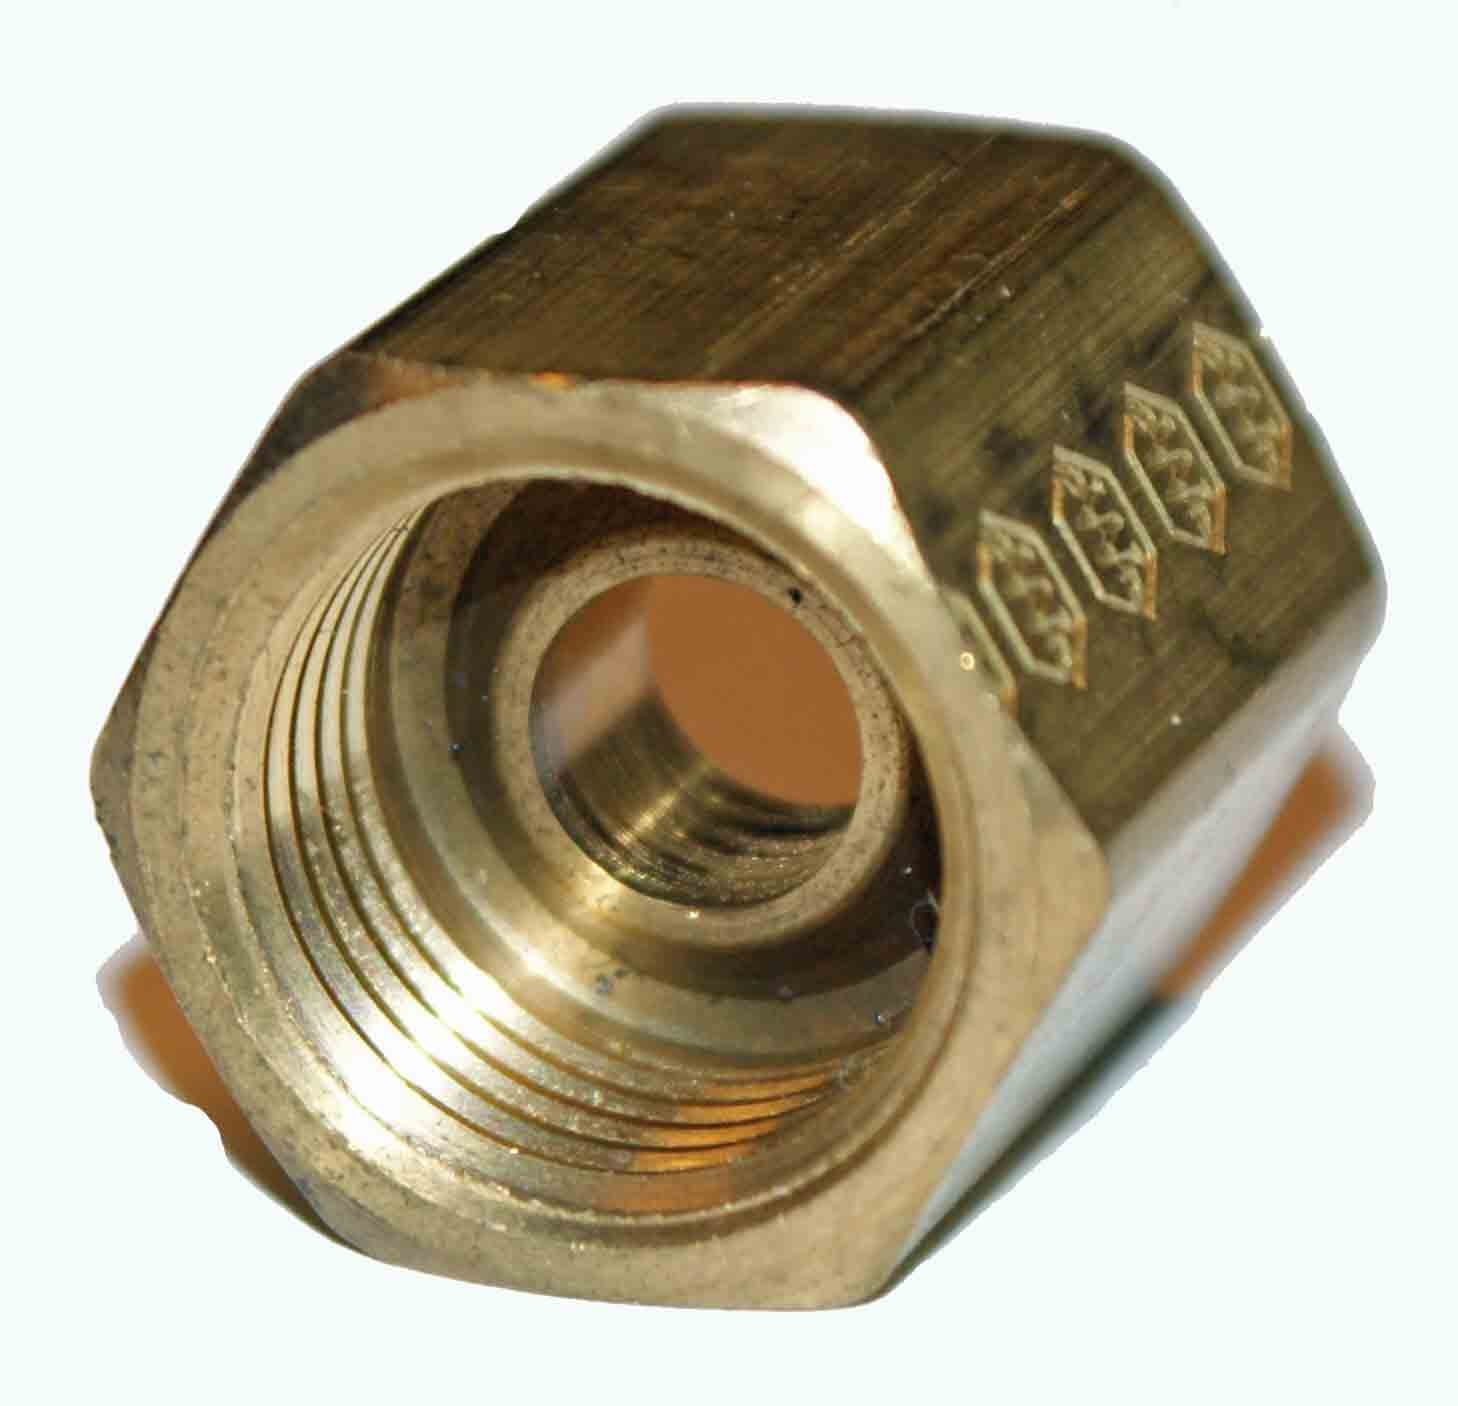 "Weatherhead 3/8"" OD Female Inverted Union - Brass"